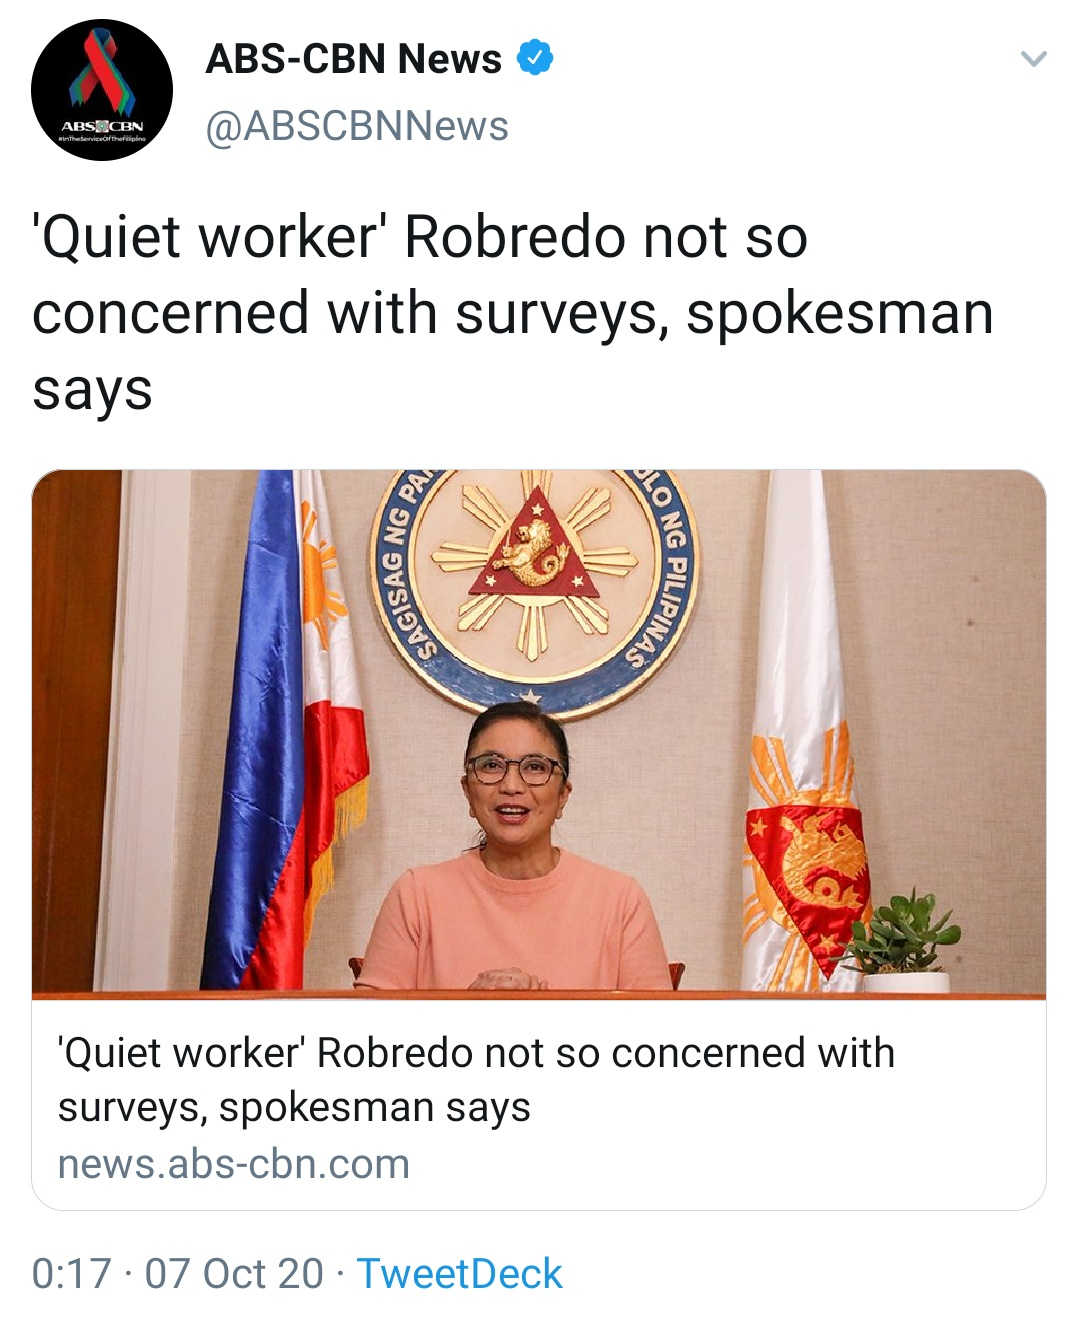 'Quiet worker' Robredo not so concerned with surveys, spokesman says